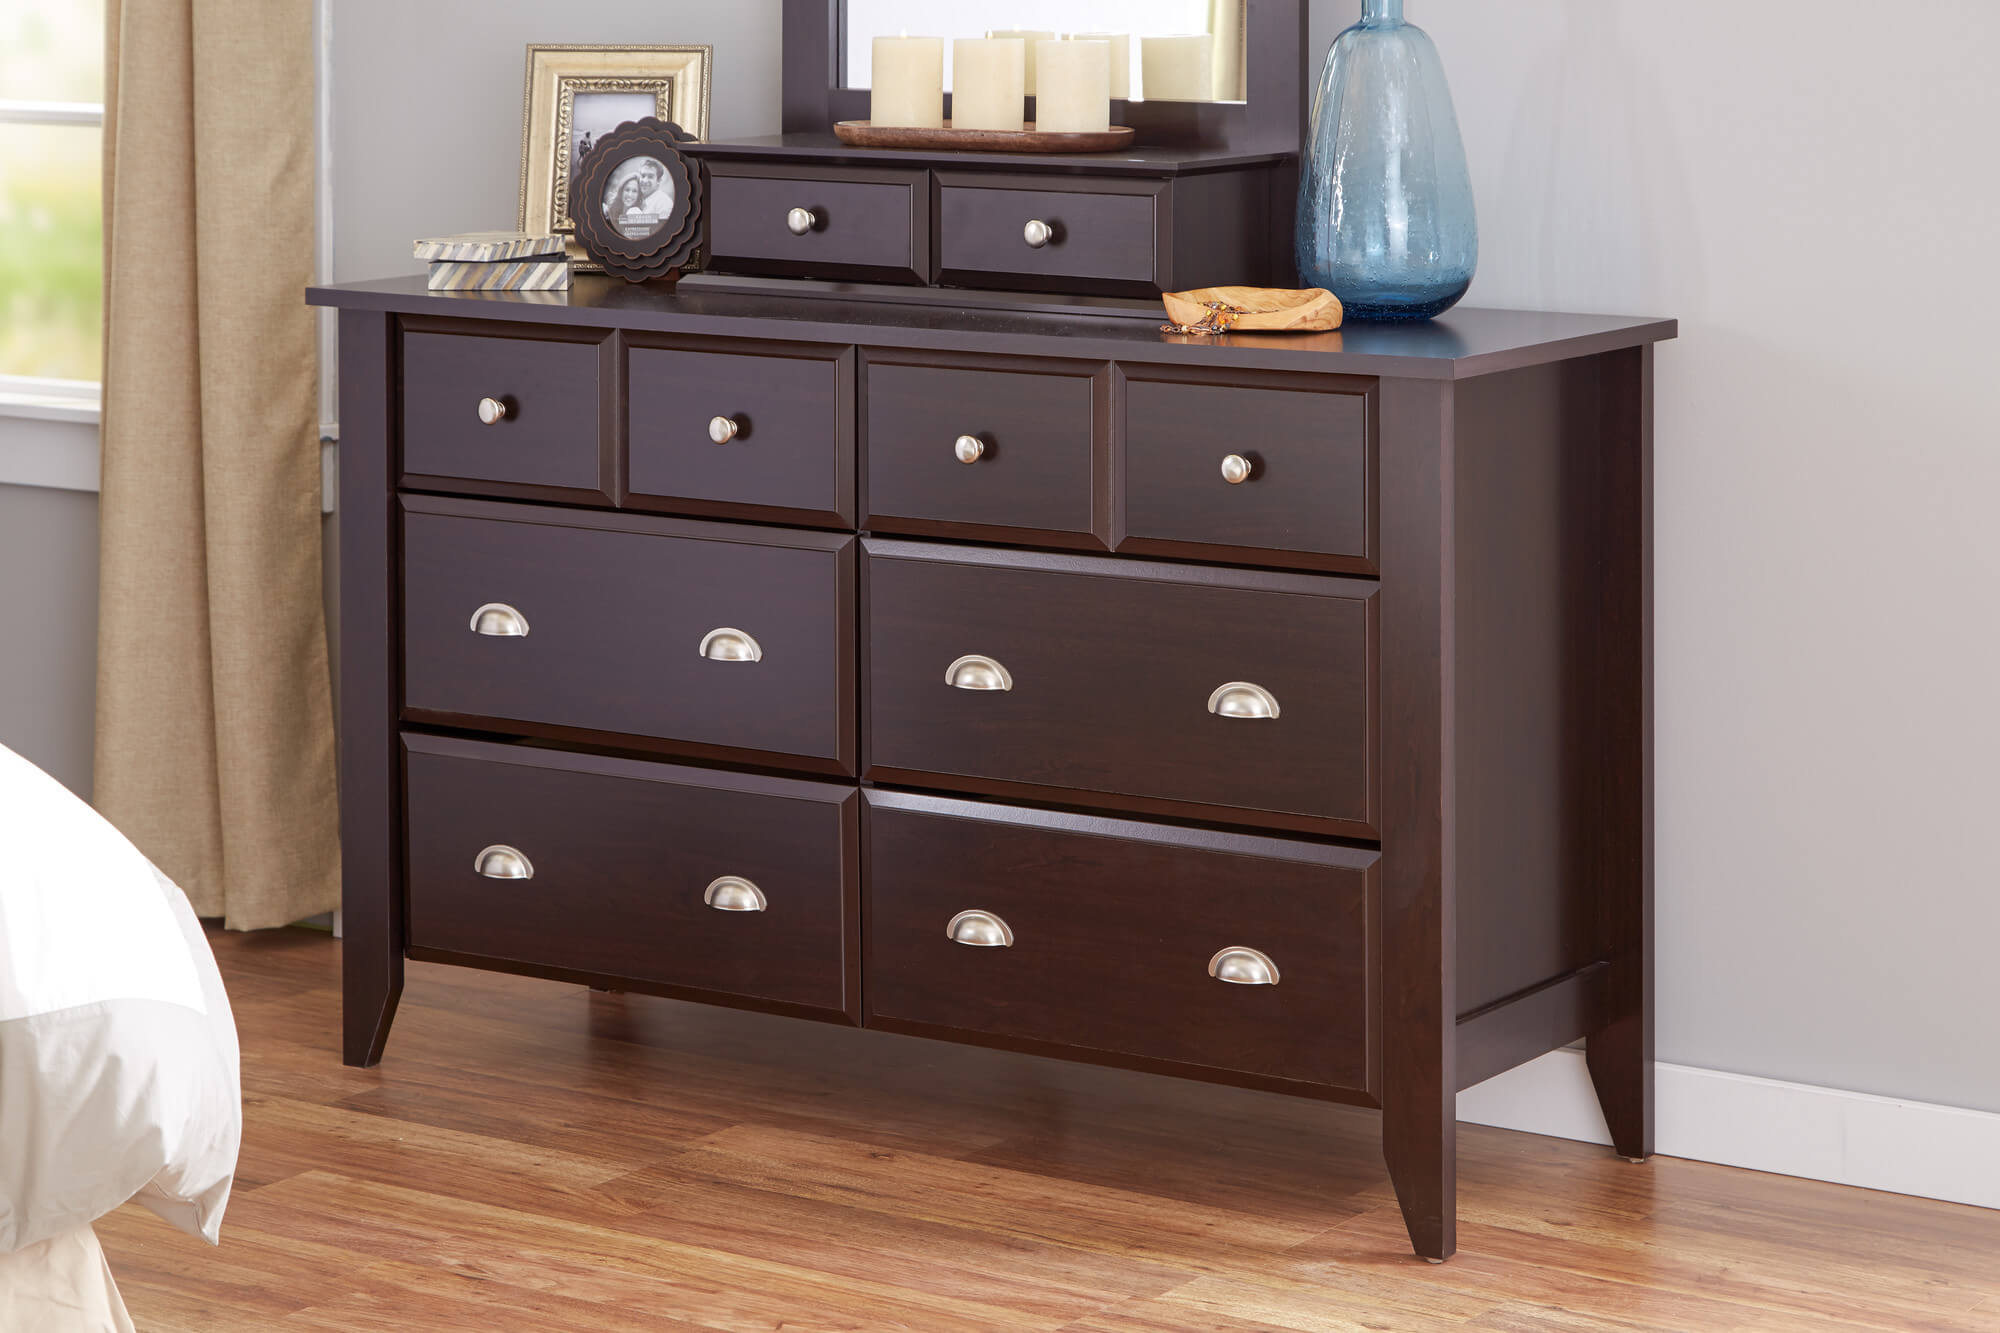 10 Types of Dressers & Chest of Drawers for Your Bedroom (Great Ideas)